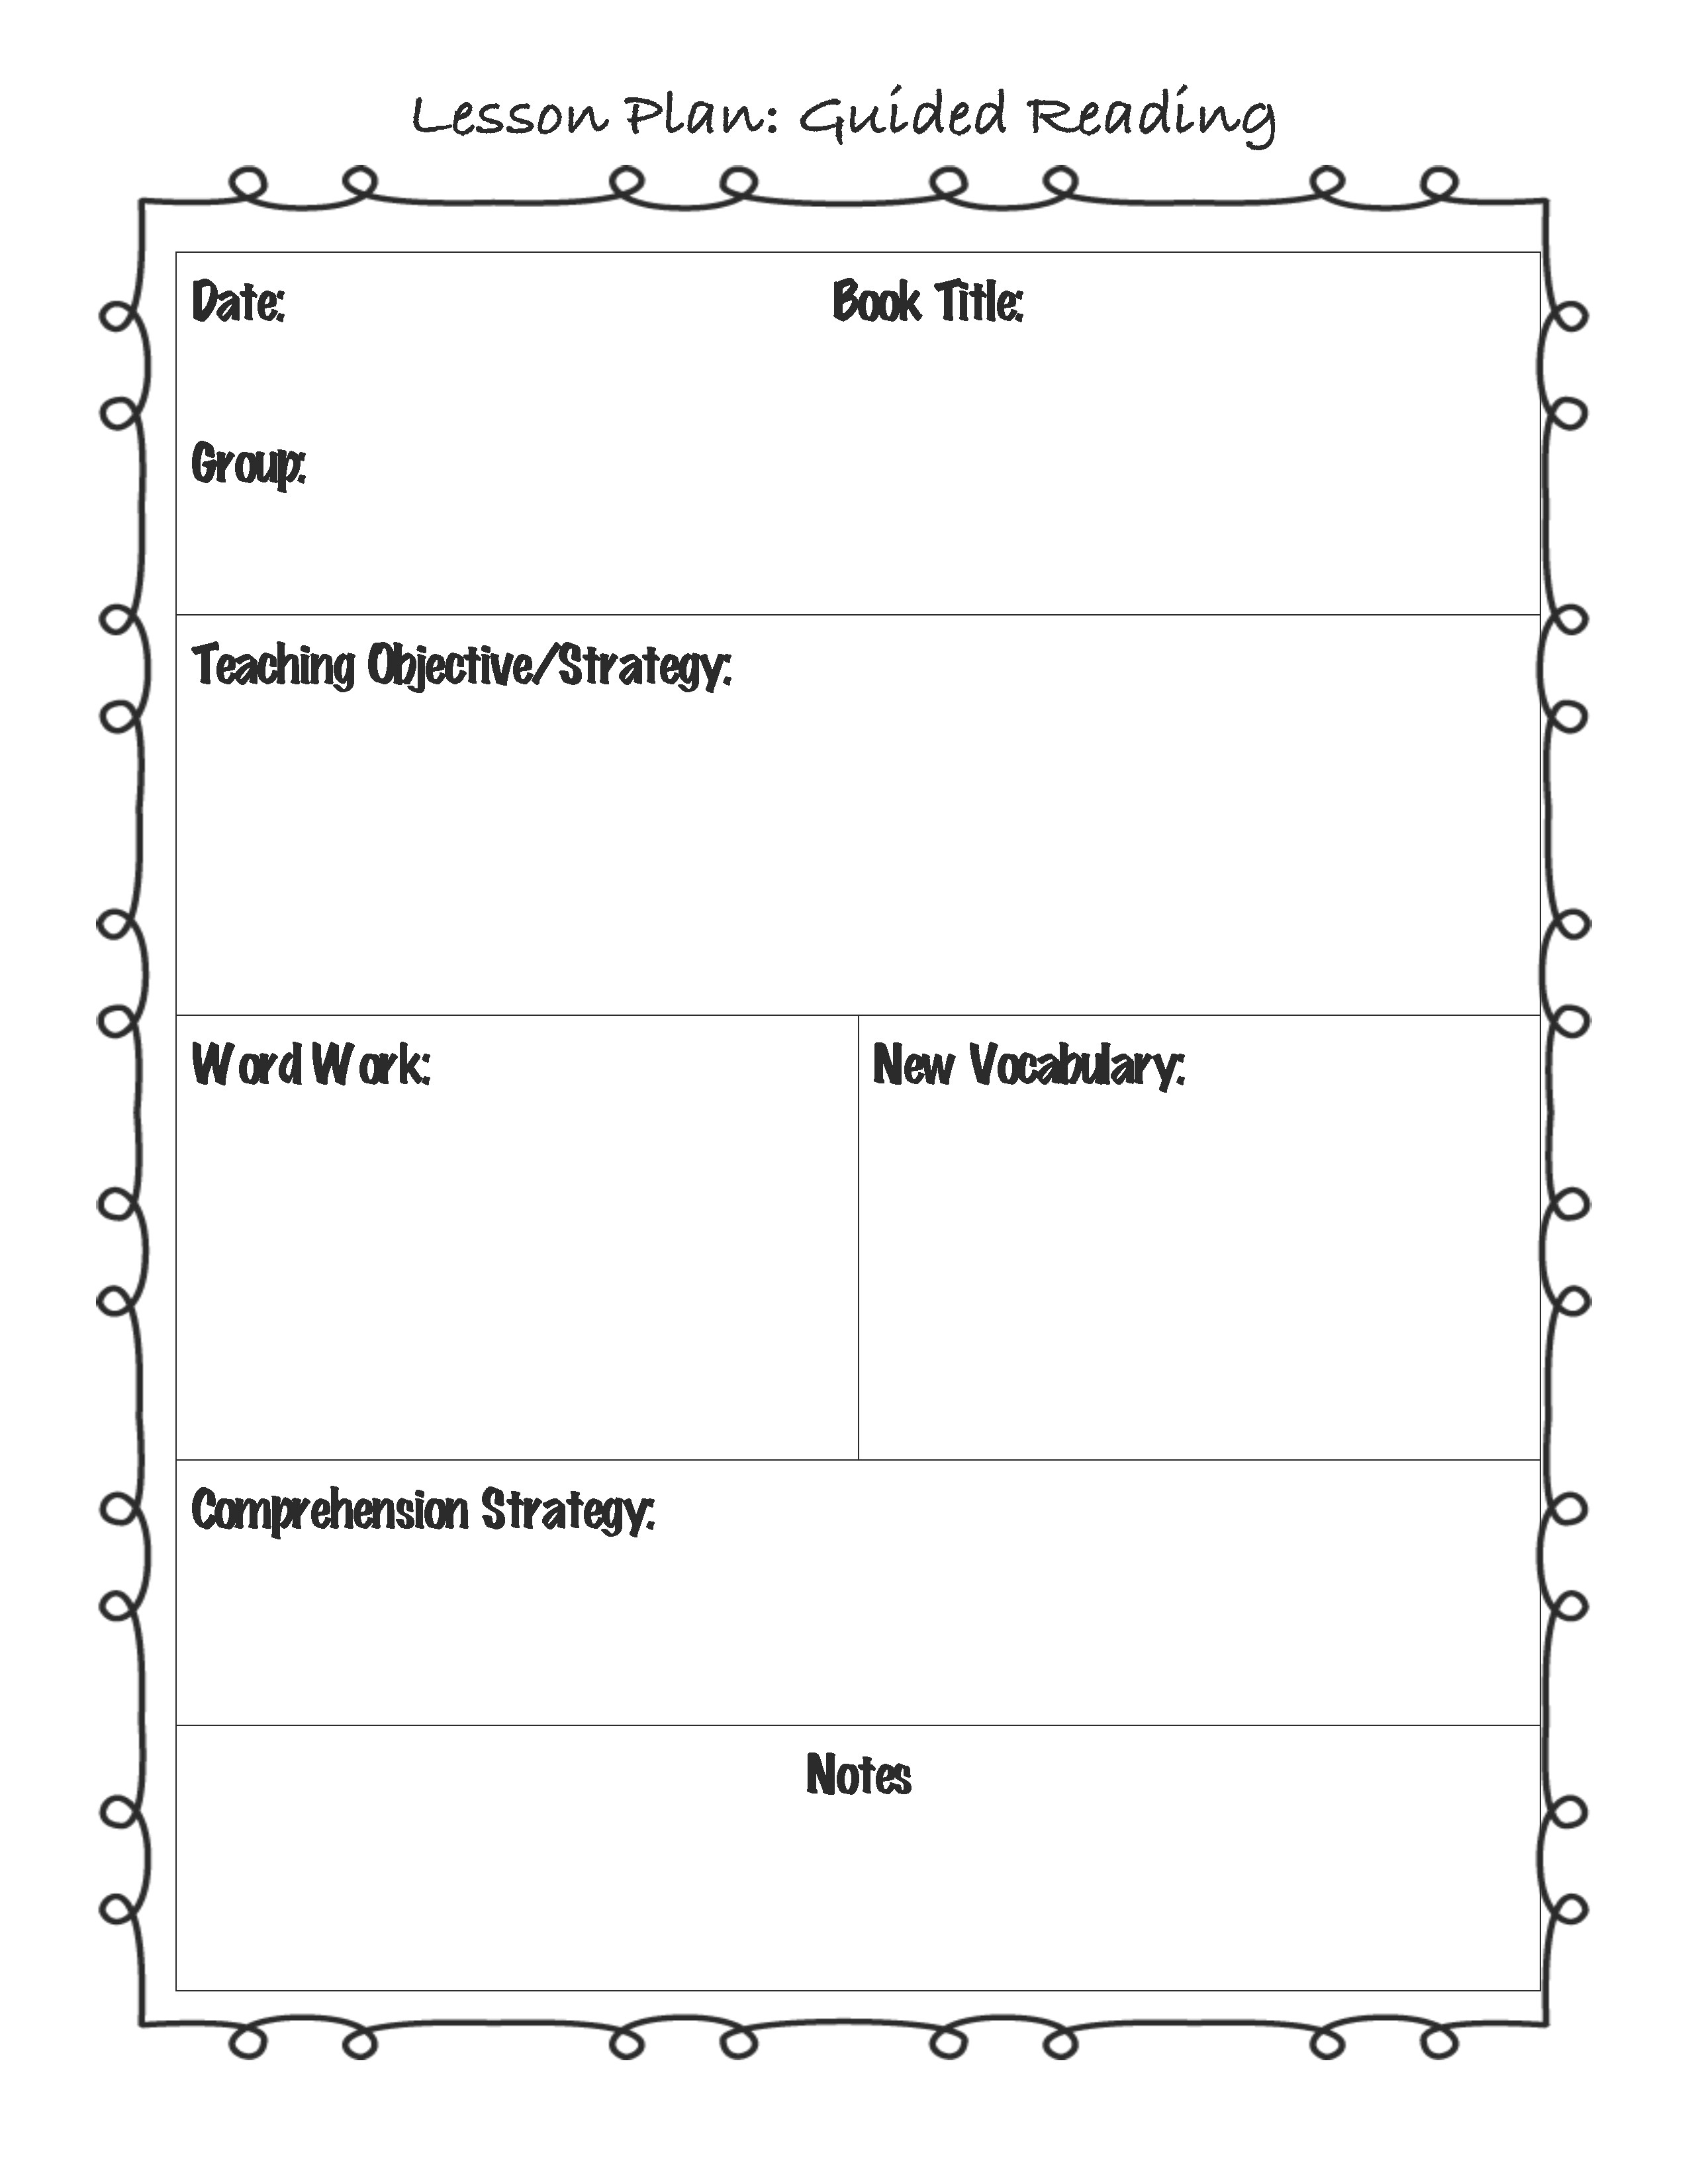 Guided Reading Observation Template Guided Reading Lesson Plan Template for the Classroom